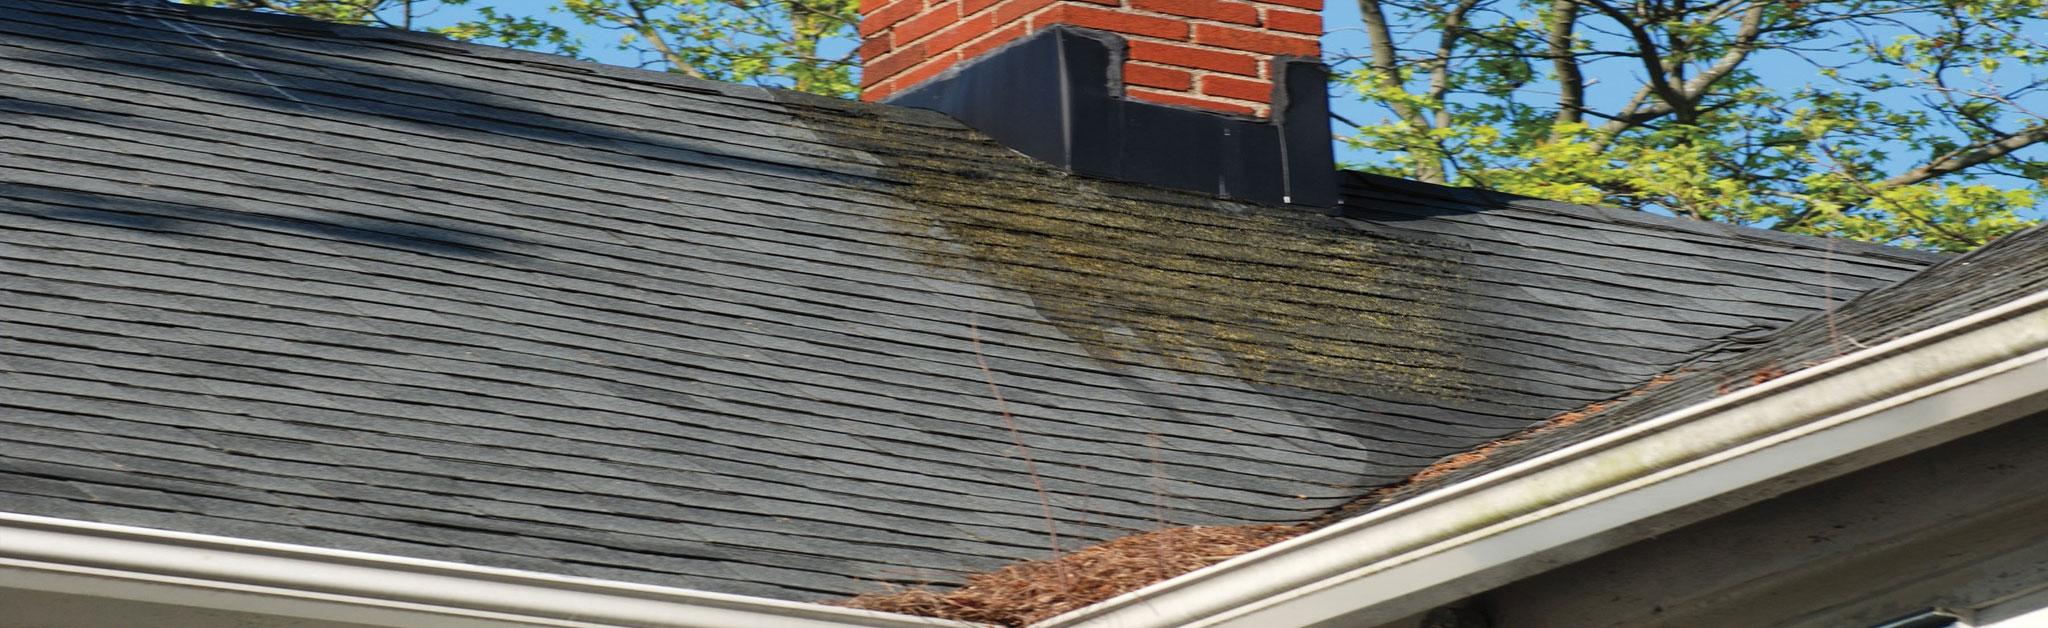 An Be Roofing Inc. Images